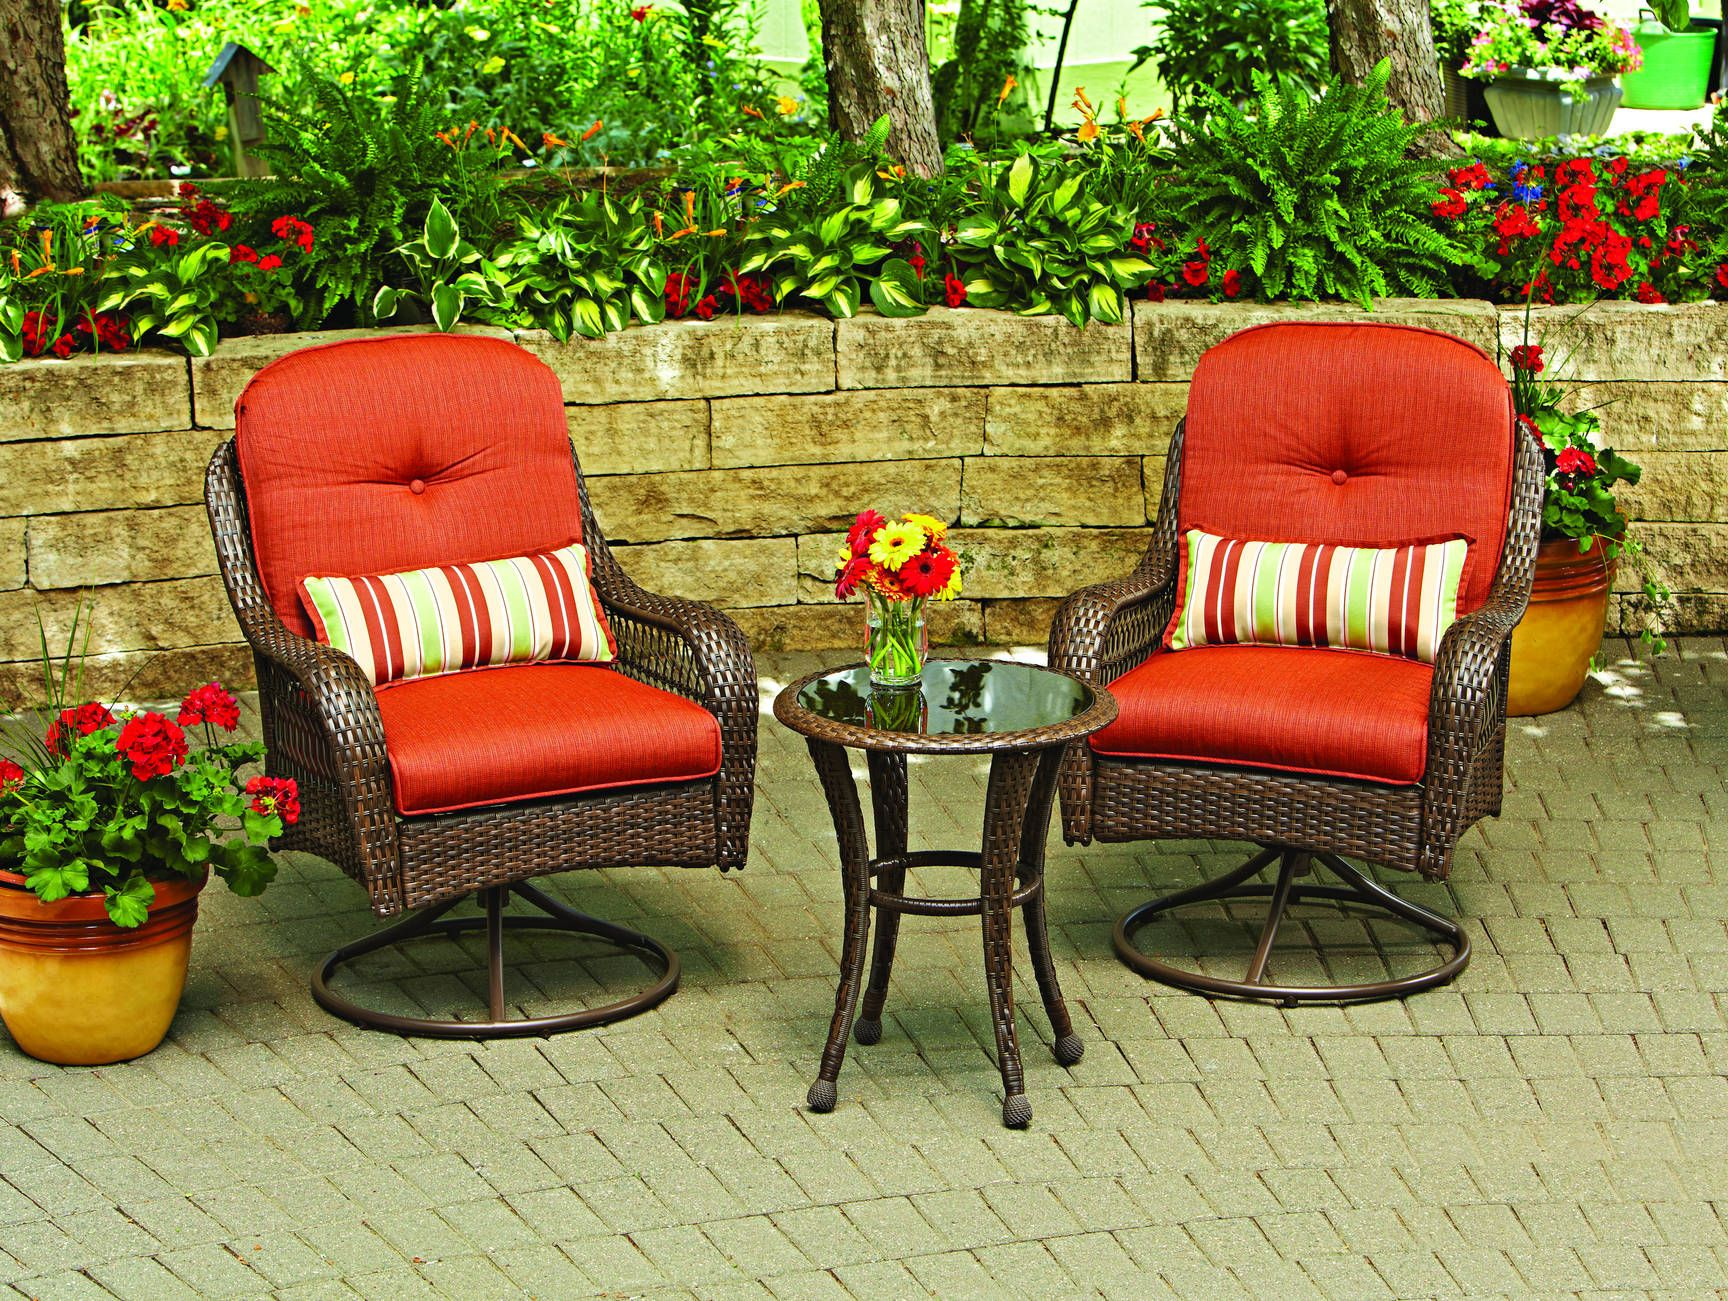 Better Homes and Gardens Patio Furniture Replacement Cushions ... on garden ridge patio cushions, better home and garden dining table, better homes and gardens chair cushions, better homes and gardens azalea ridge ottoman, wrought iron patio furniture cushions,